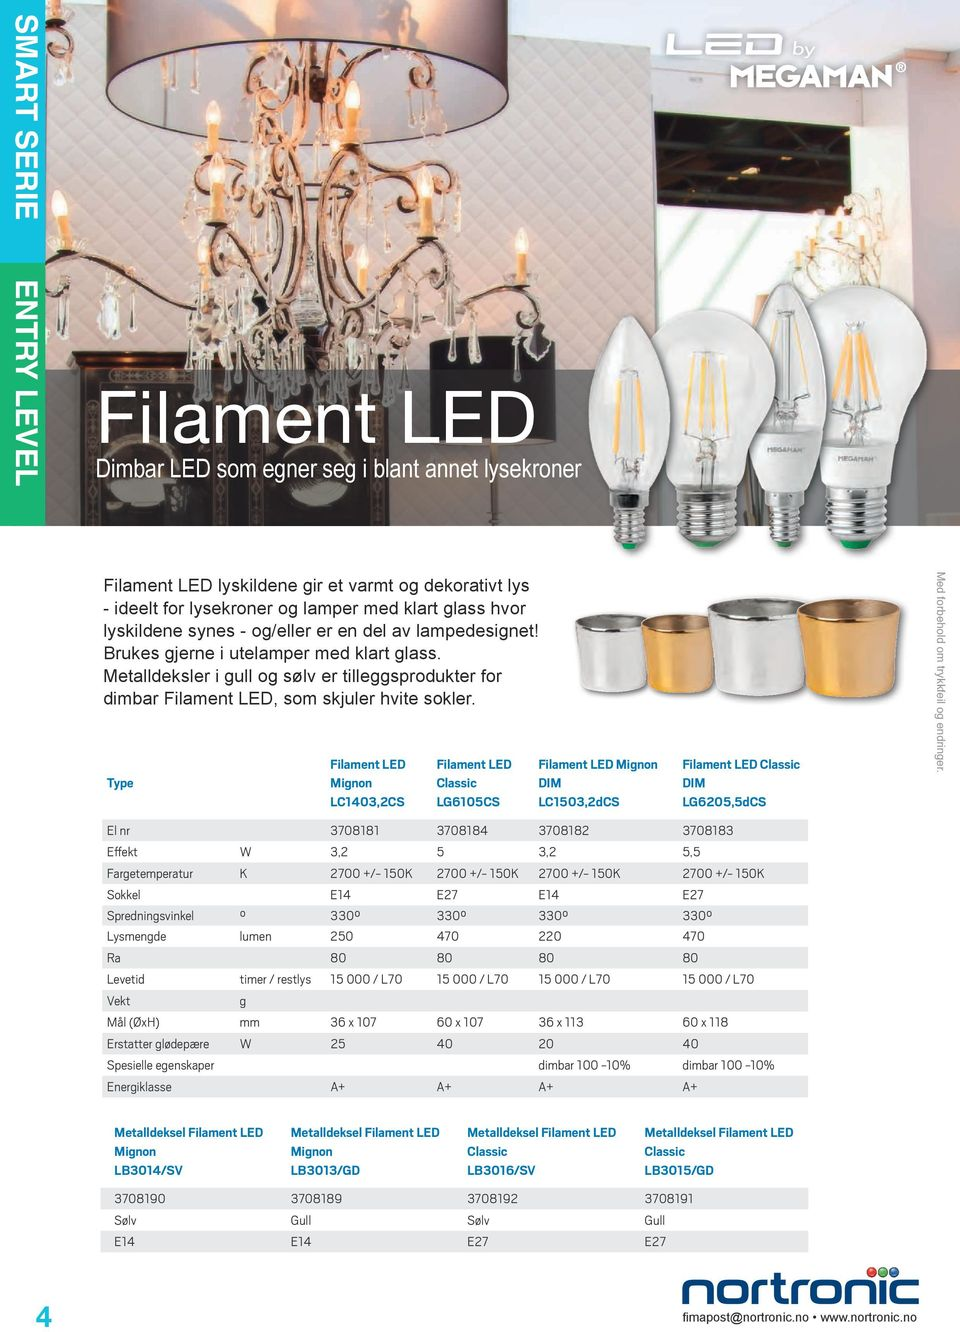 Filament LED Mignon LC1403,2CS Filament LED Classic LG6105CS Filament LED Mignon DIM LC1503,2dCS Filament LED Classic DIM LG6205,5dCS El nr 3708181 3708184 3708182 3708183 Effekt W 3,2 5 3,2 5,5